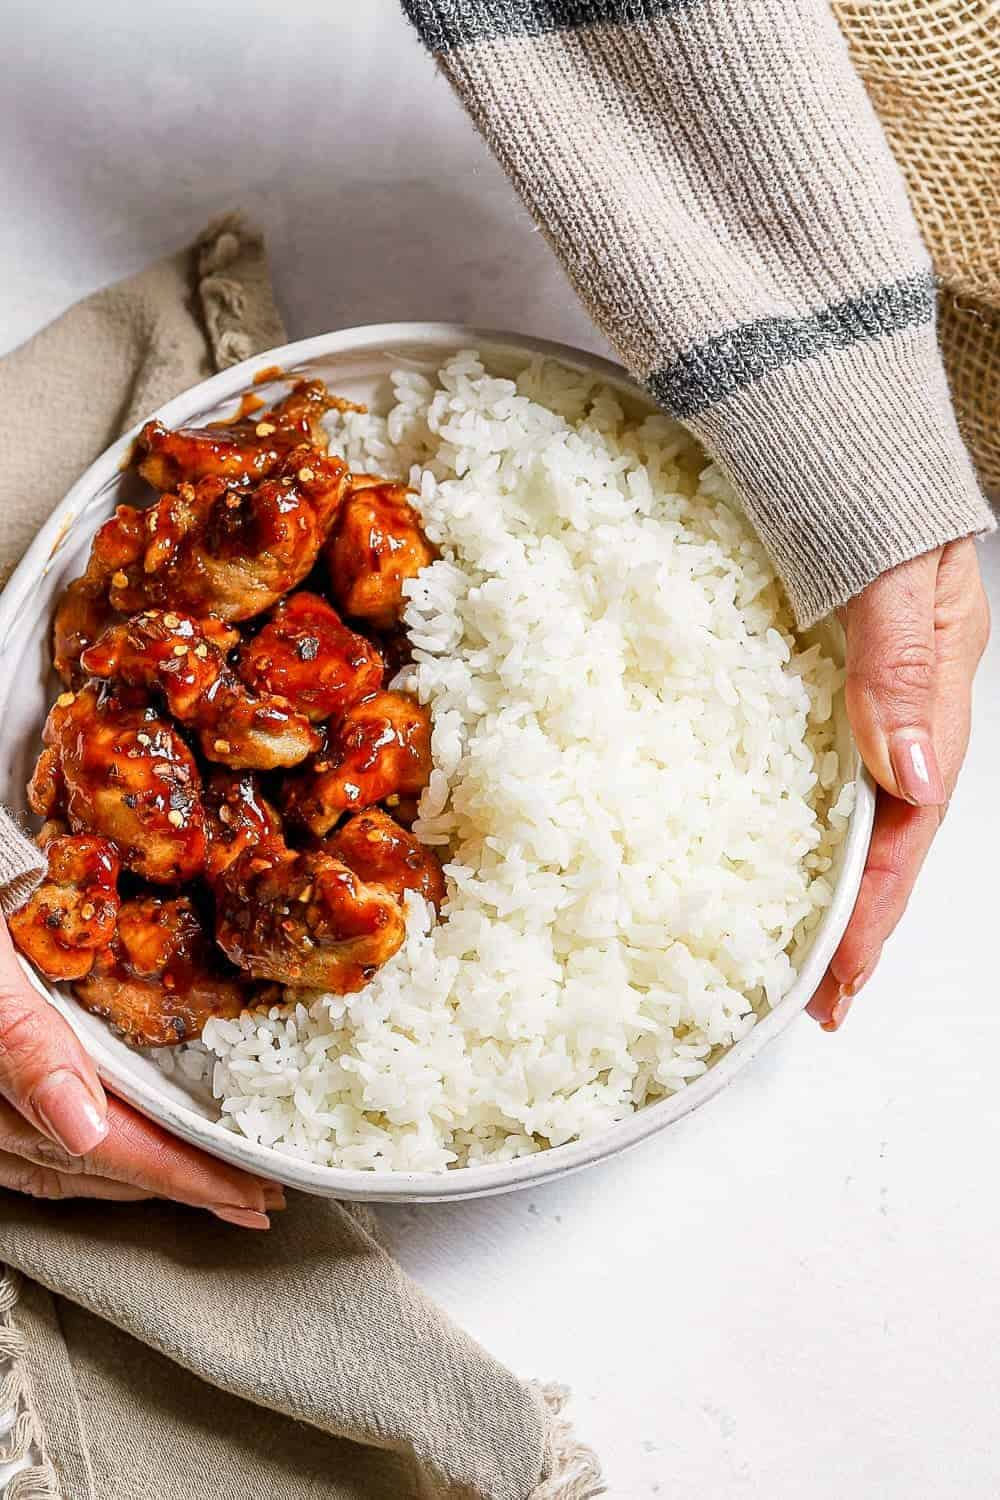 hand holding plate of chicken and rice